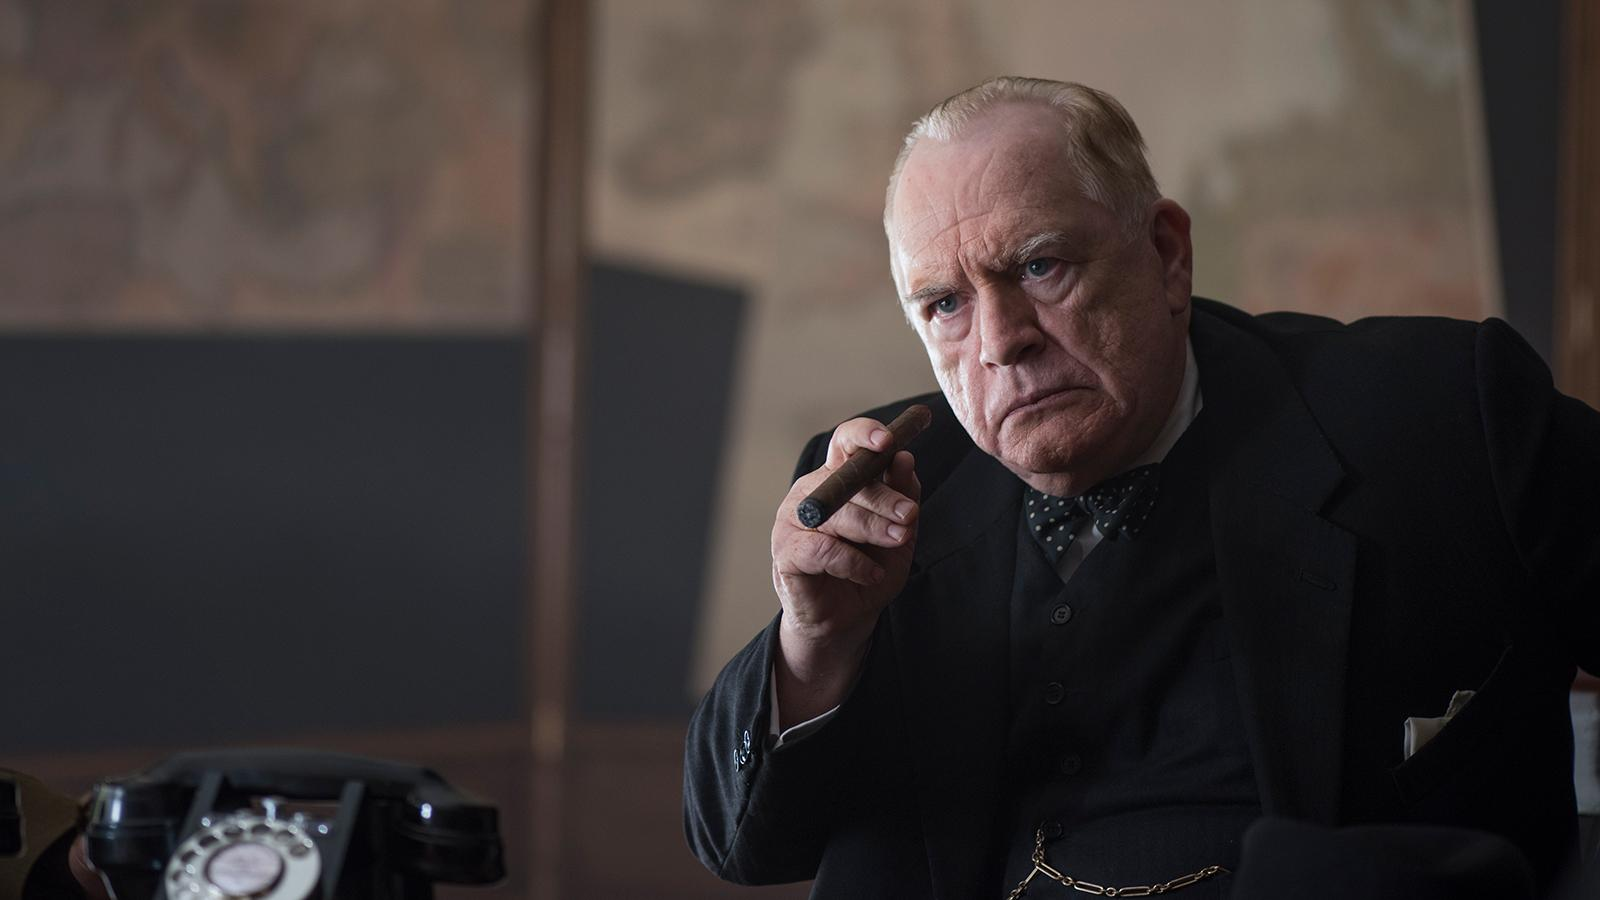 Actor Brian Cox plays Sir Winston Churchill in the eponymous film that opened last Friday.